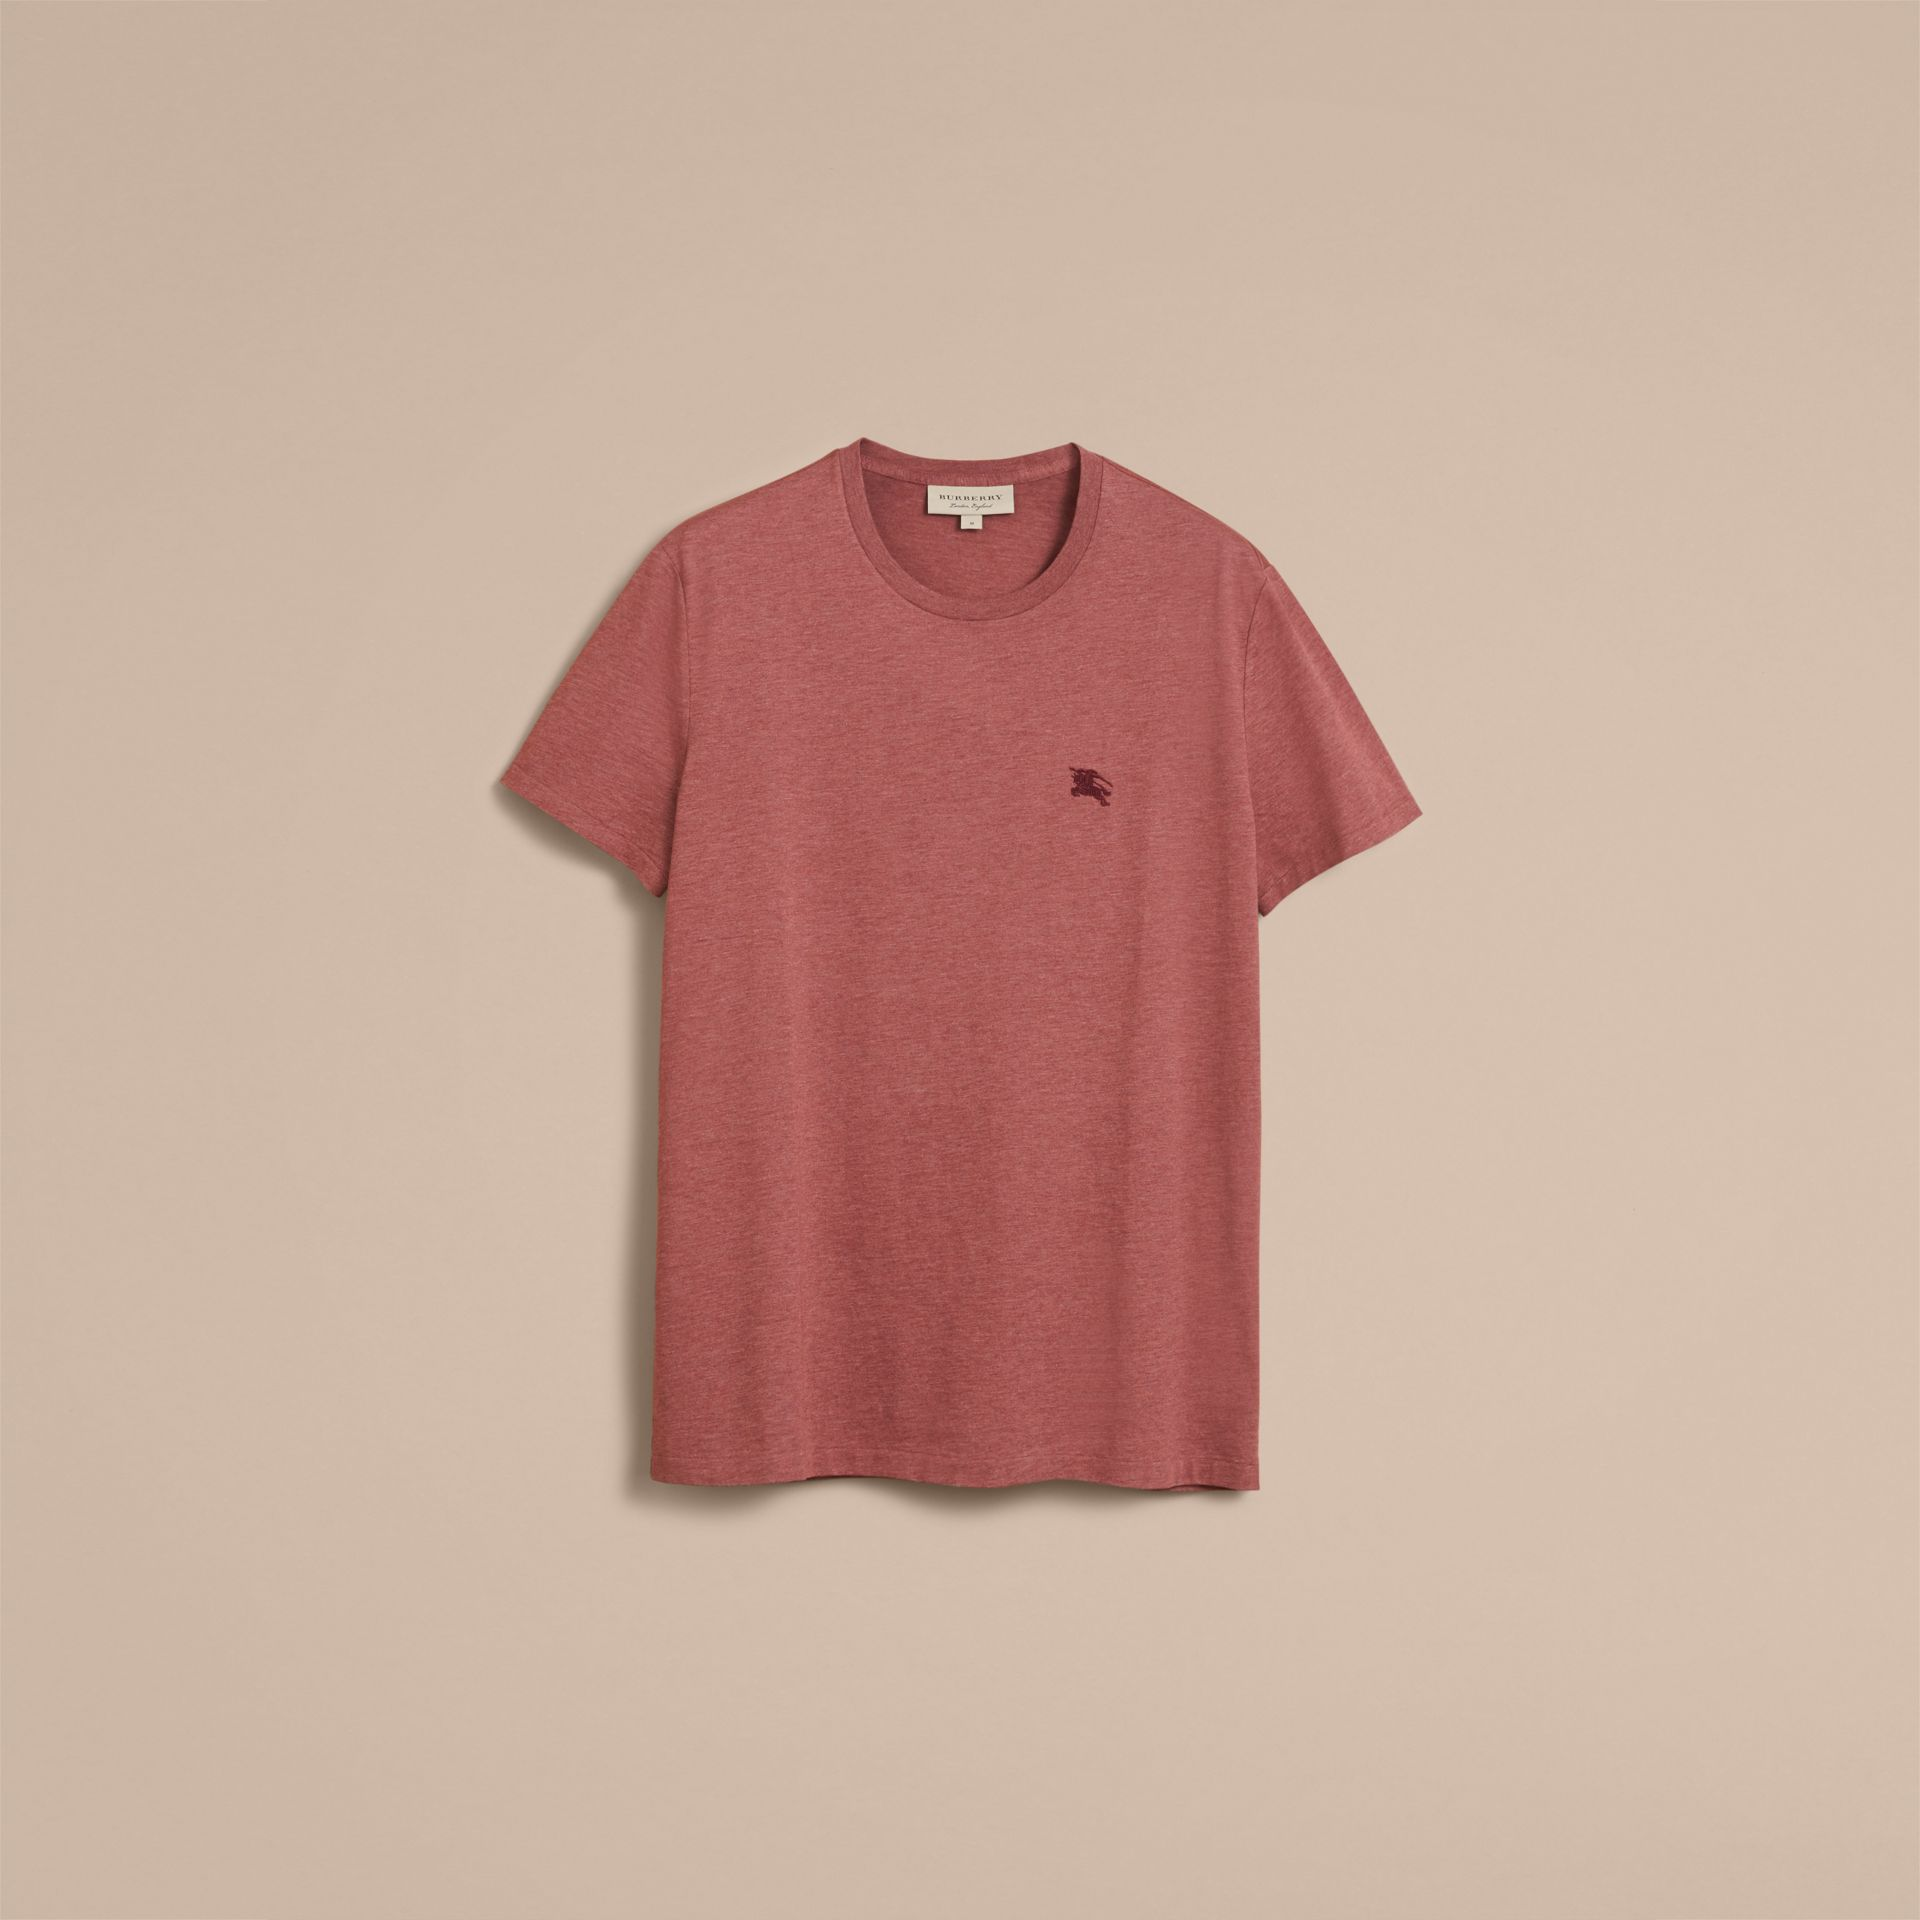 Cotton Jersey T-shirt in Russet Melange - Men | Burberry Singapore - gallery image 4